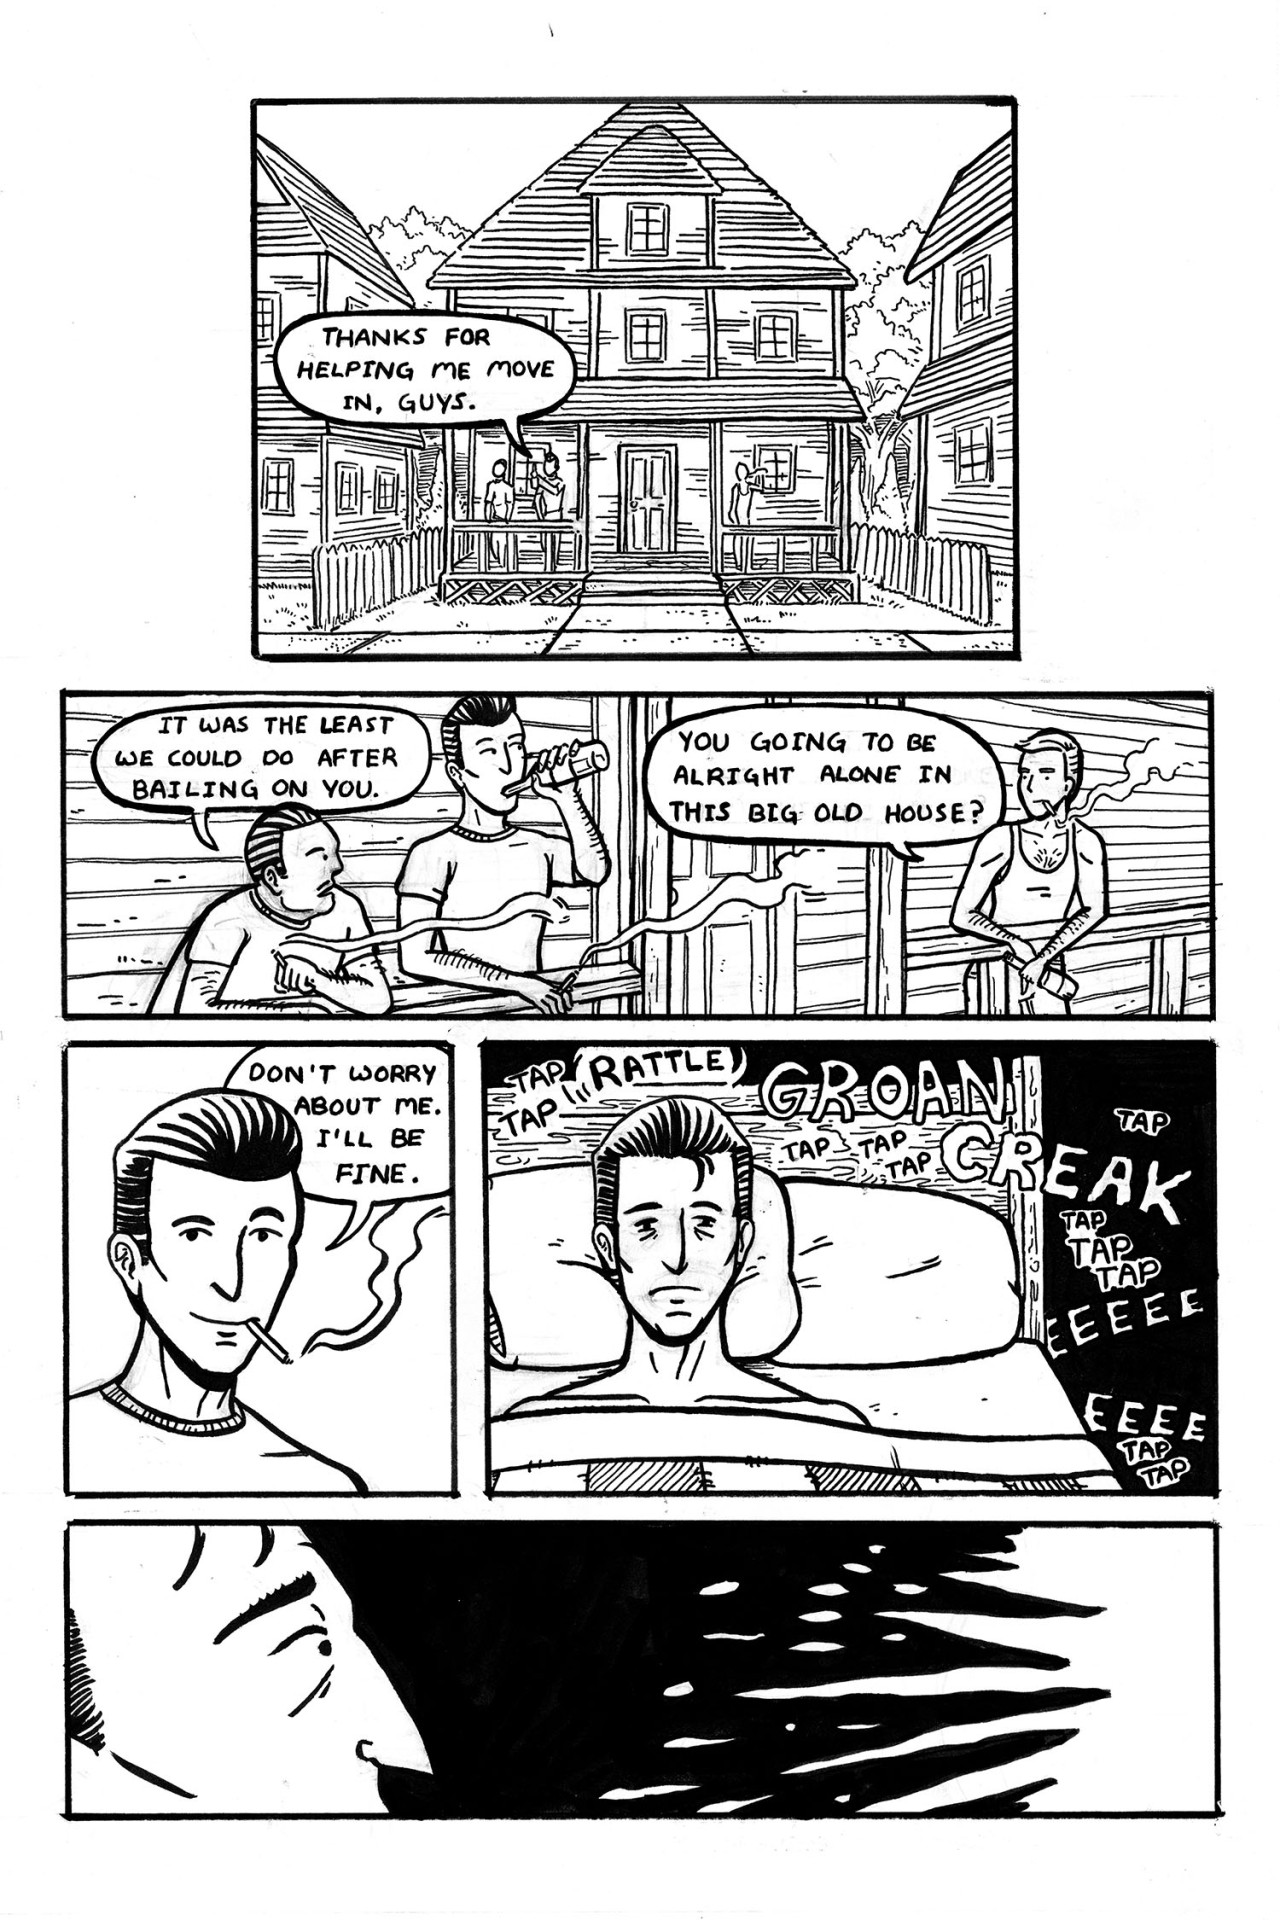 The Man Who Lives Alone My Intro to Comics final about ghosts and love.